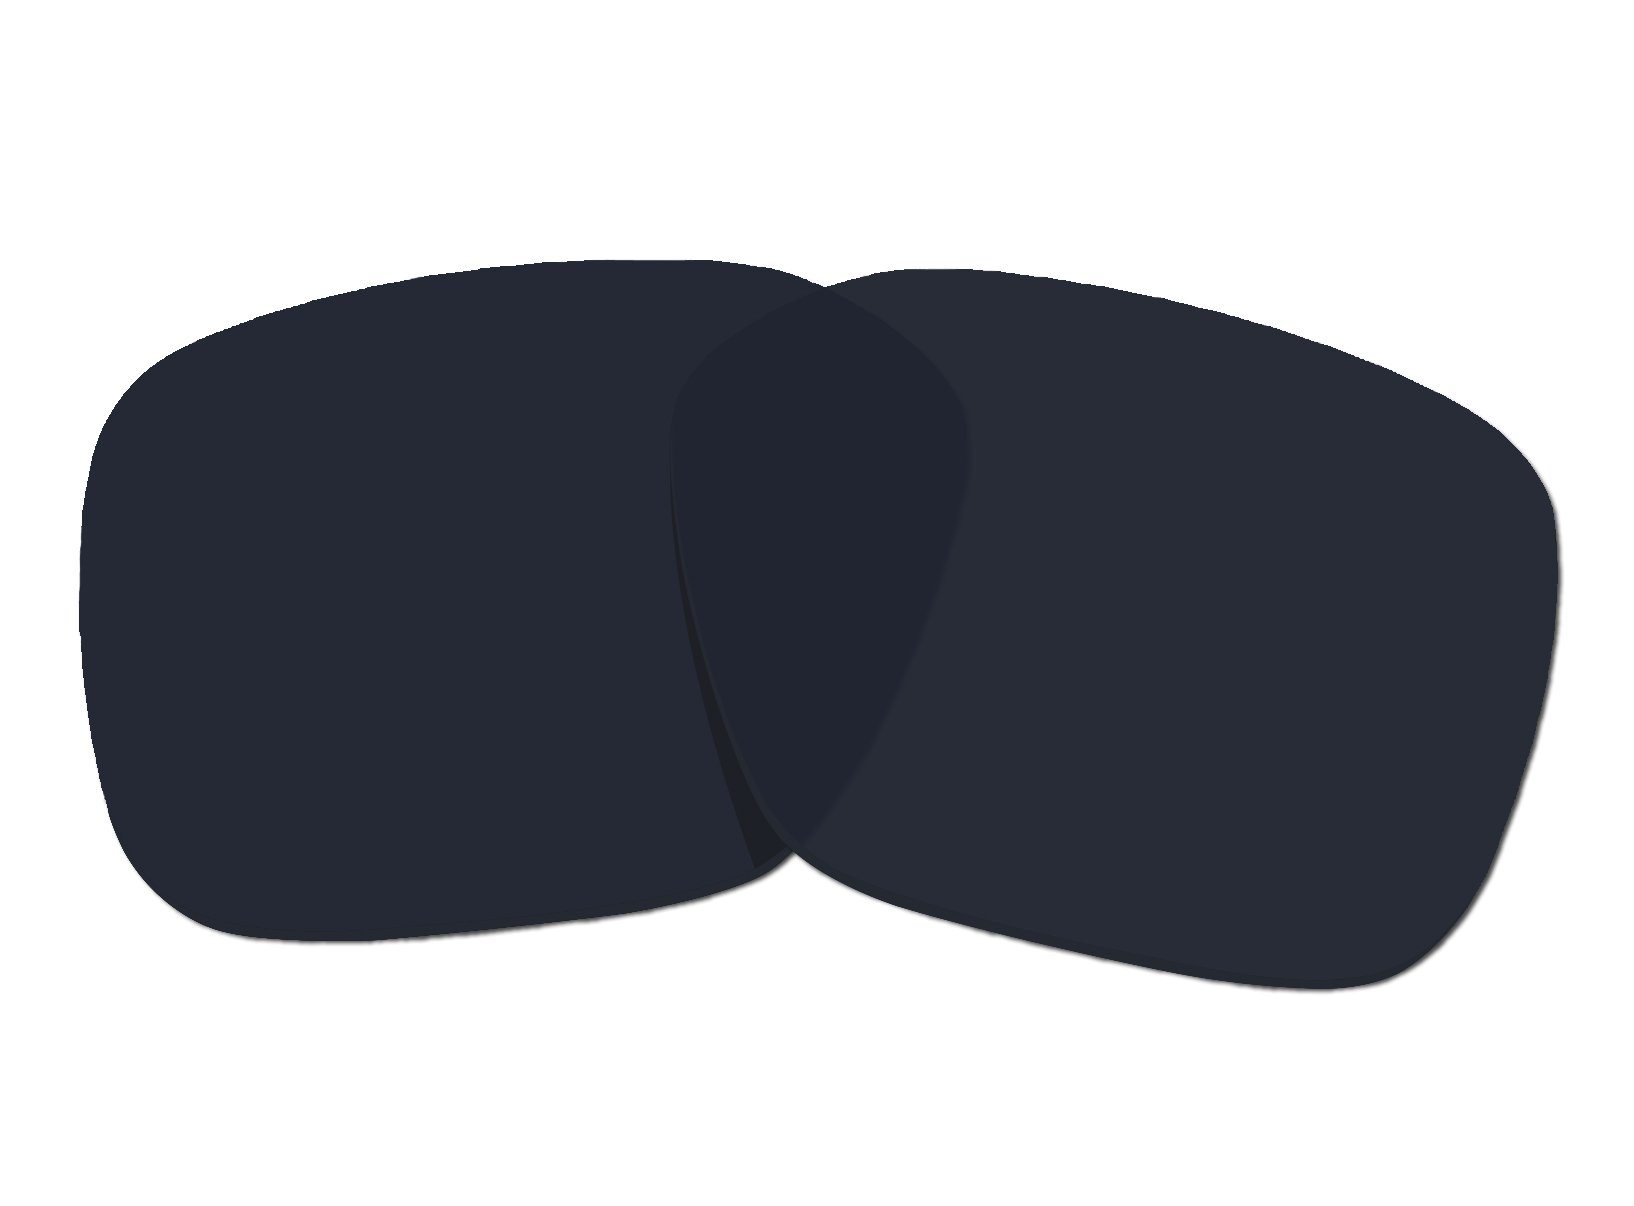 COLOR STAY LENSES 2.0mm Thickness Polarized Replacement Lenses for Oakley Proxy OO9312 Black by COLOR STAY LENSES